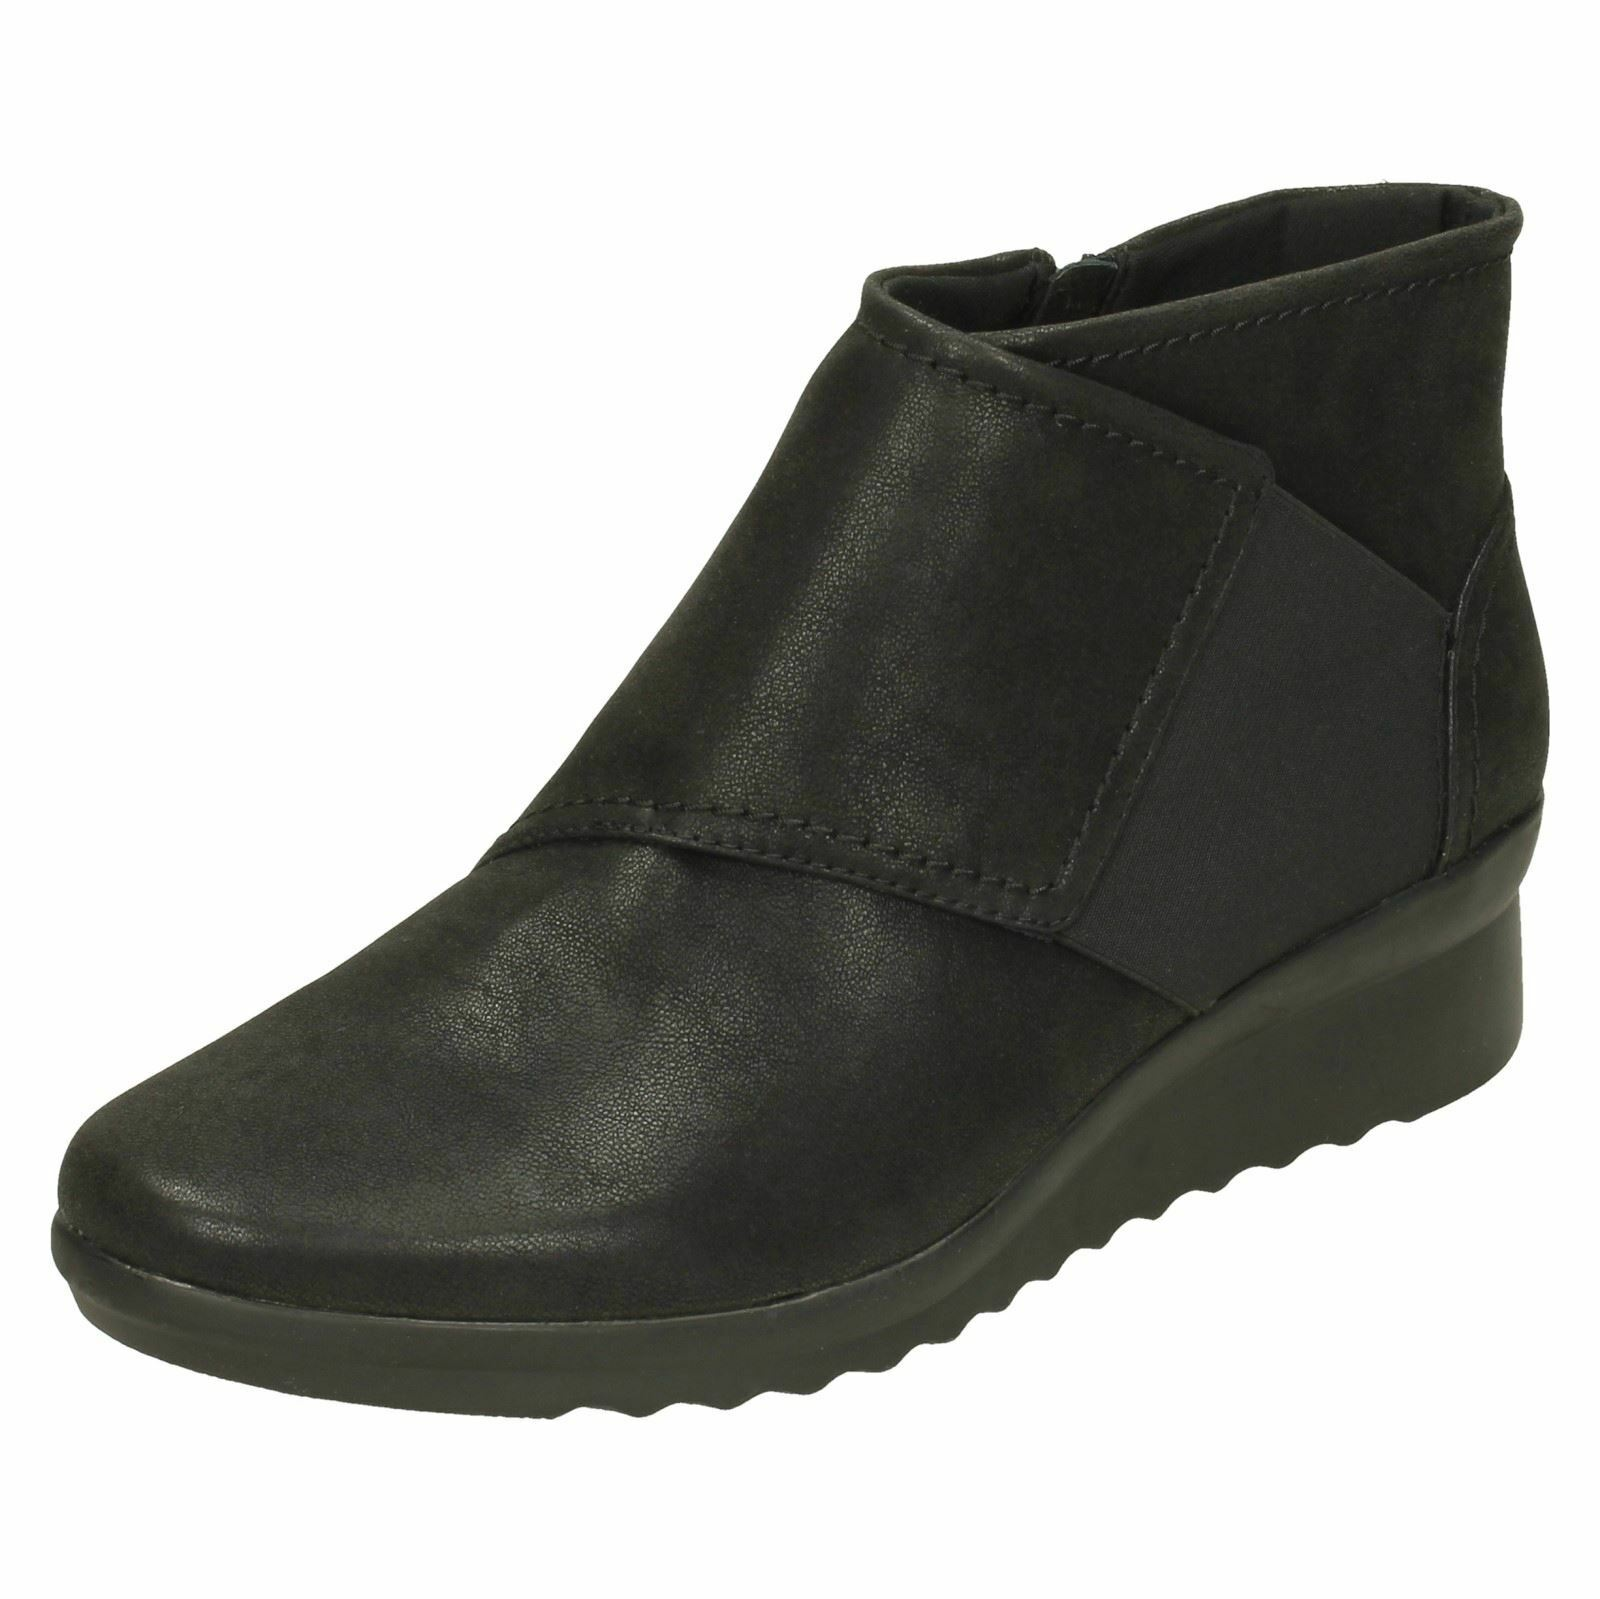 CLARKS Caddell Rush Damenschuhe Cloudsteppers Wide Fit E Wedge Ankle Boot